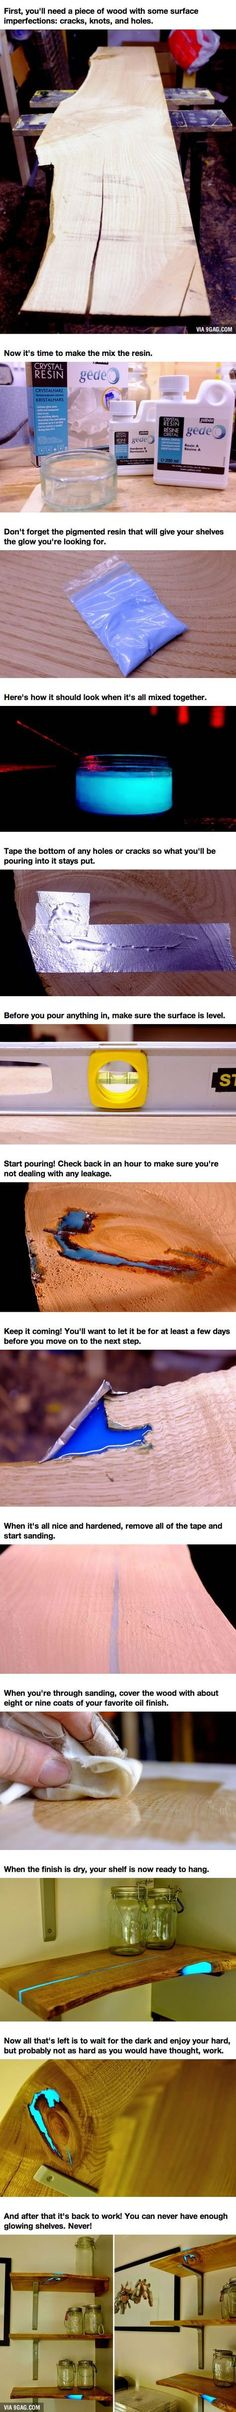 DIY Wood Working projects: DIY Awesome Glowing Shelves Are Easy To Make! - 9G...